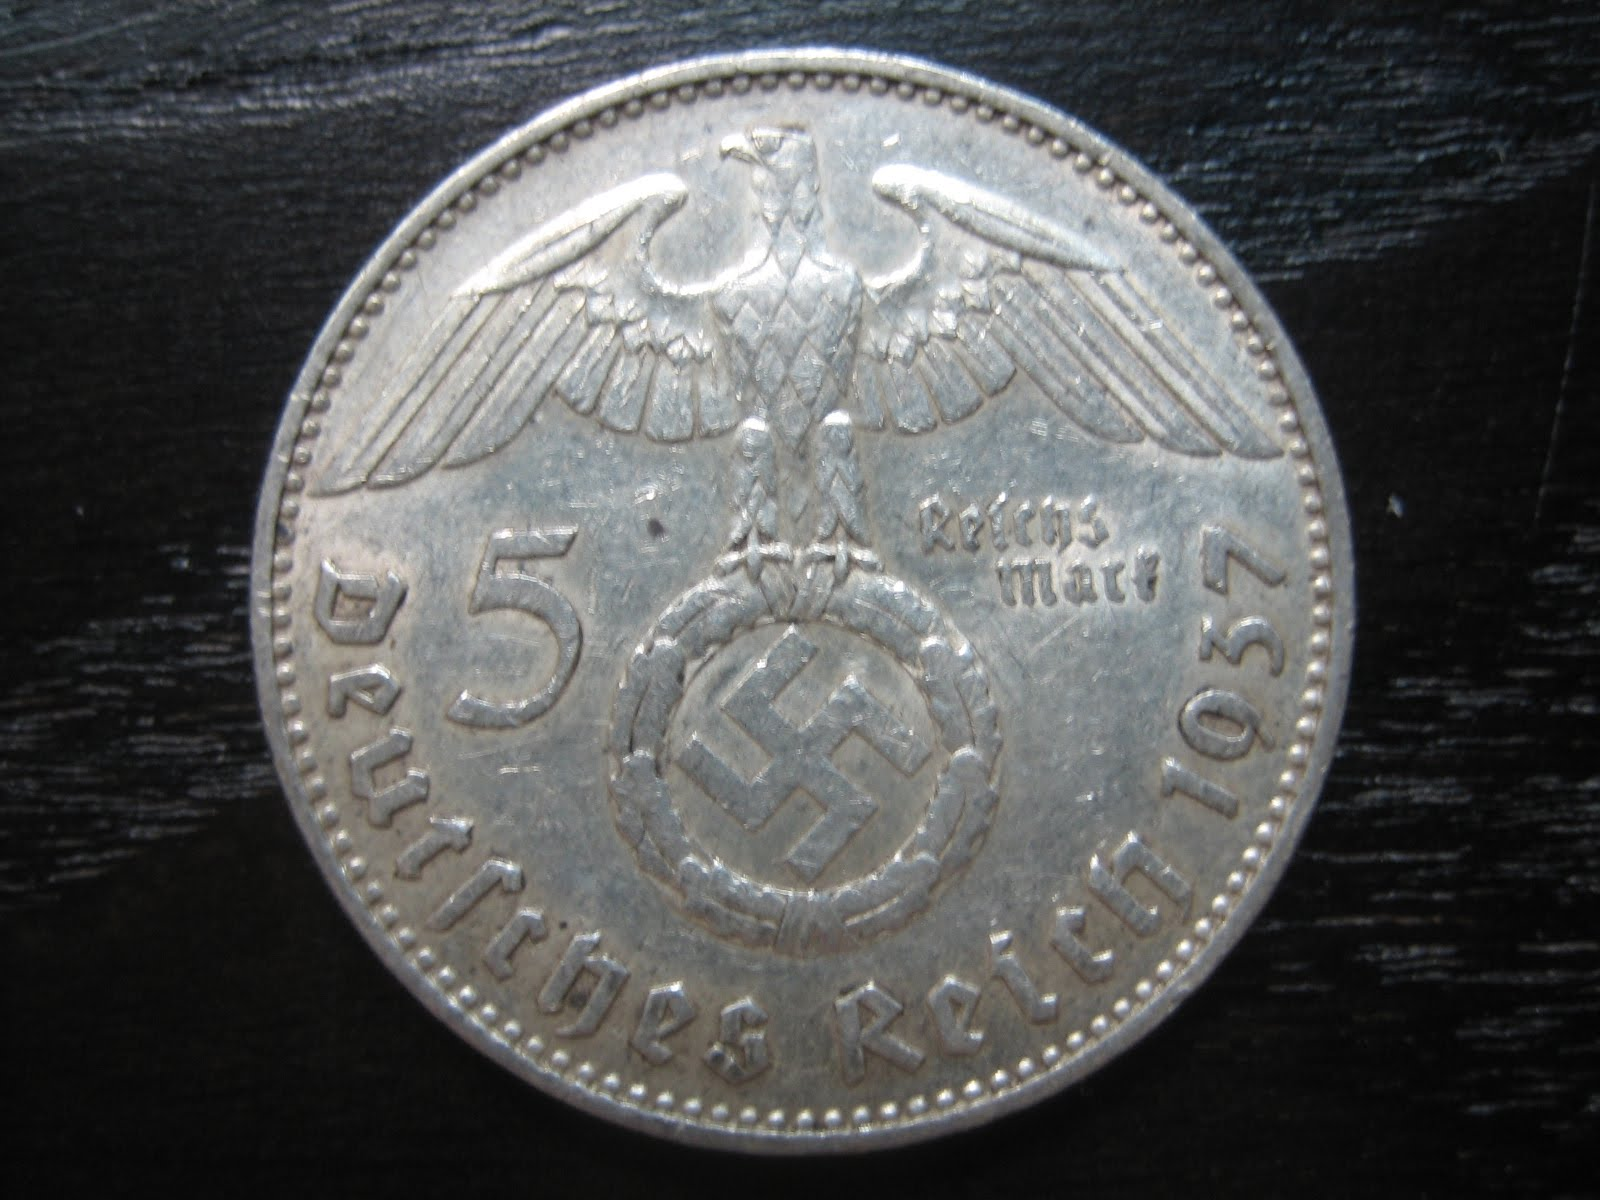 Numismatic Collection 1937 Third Reich Silver Reichmark